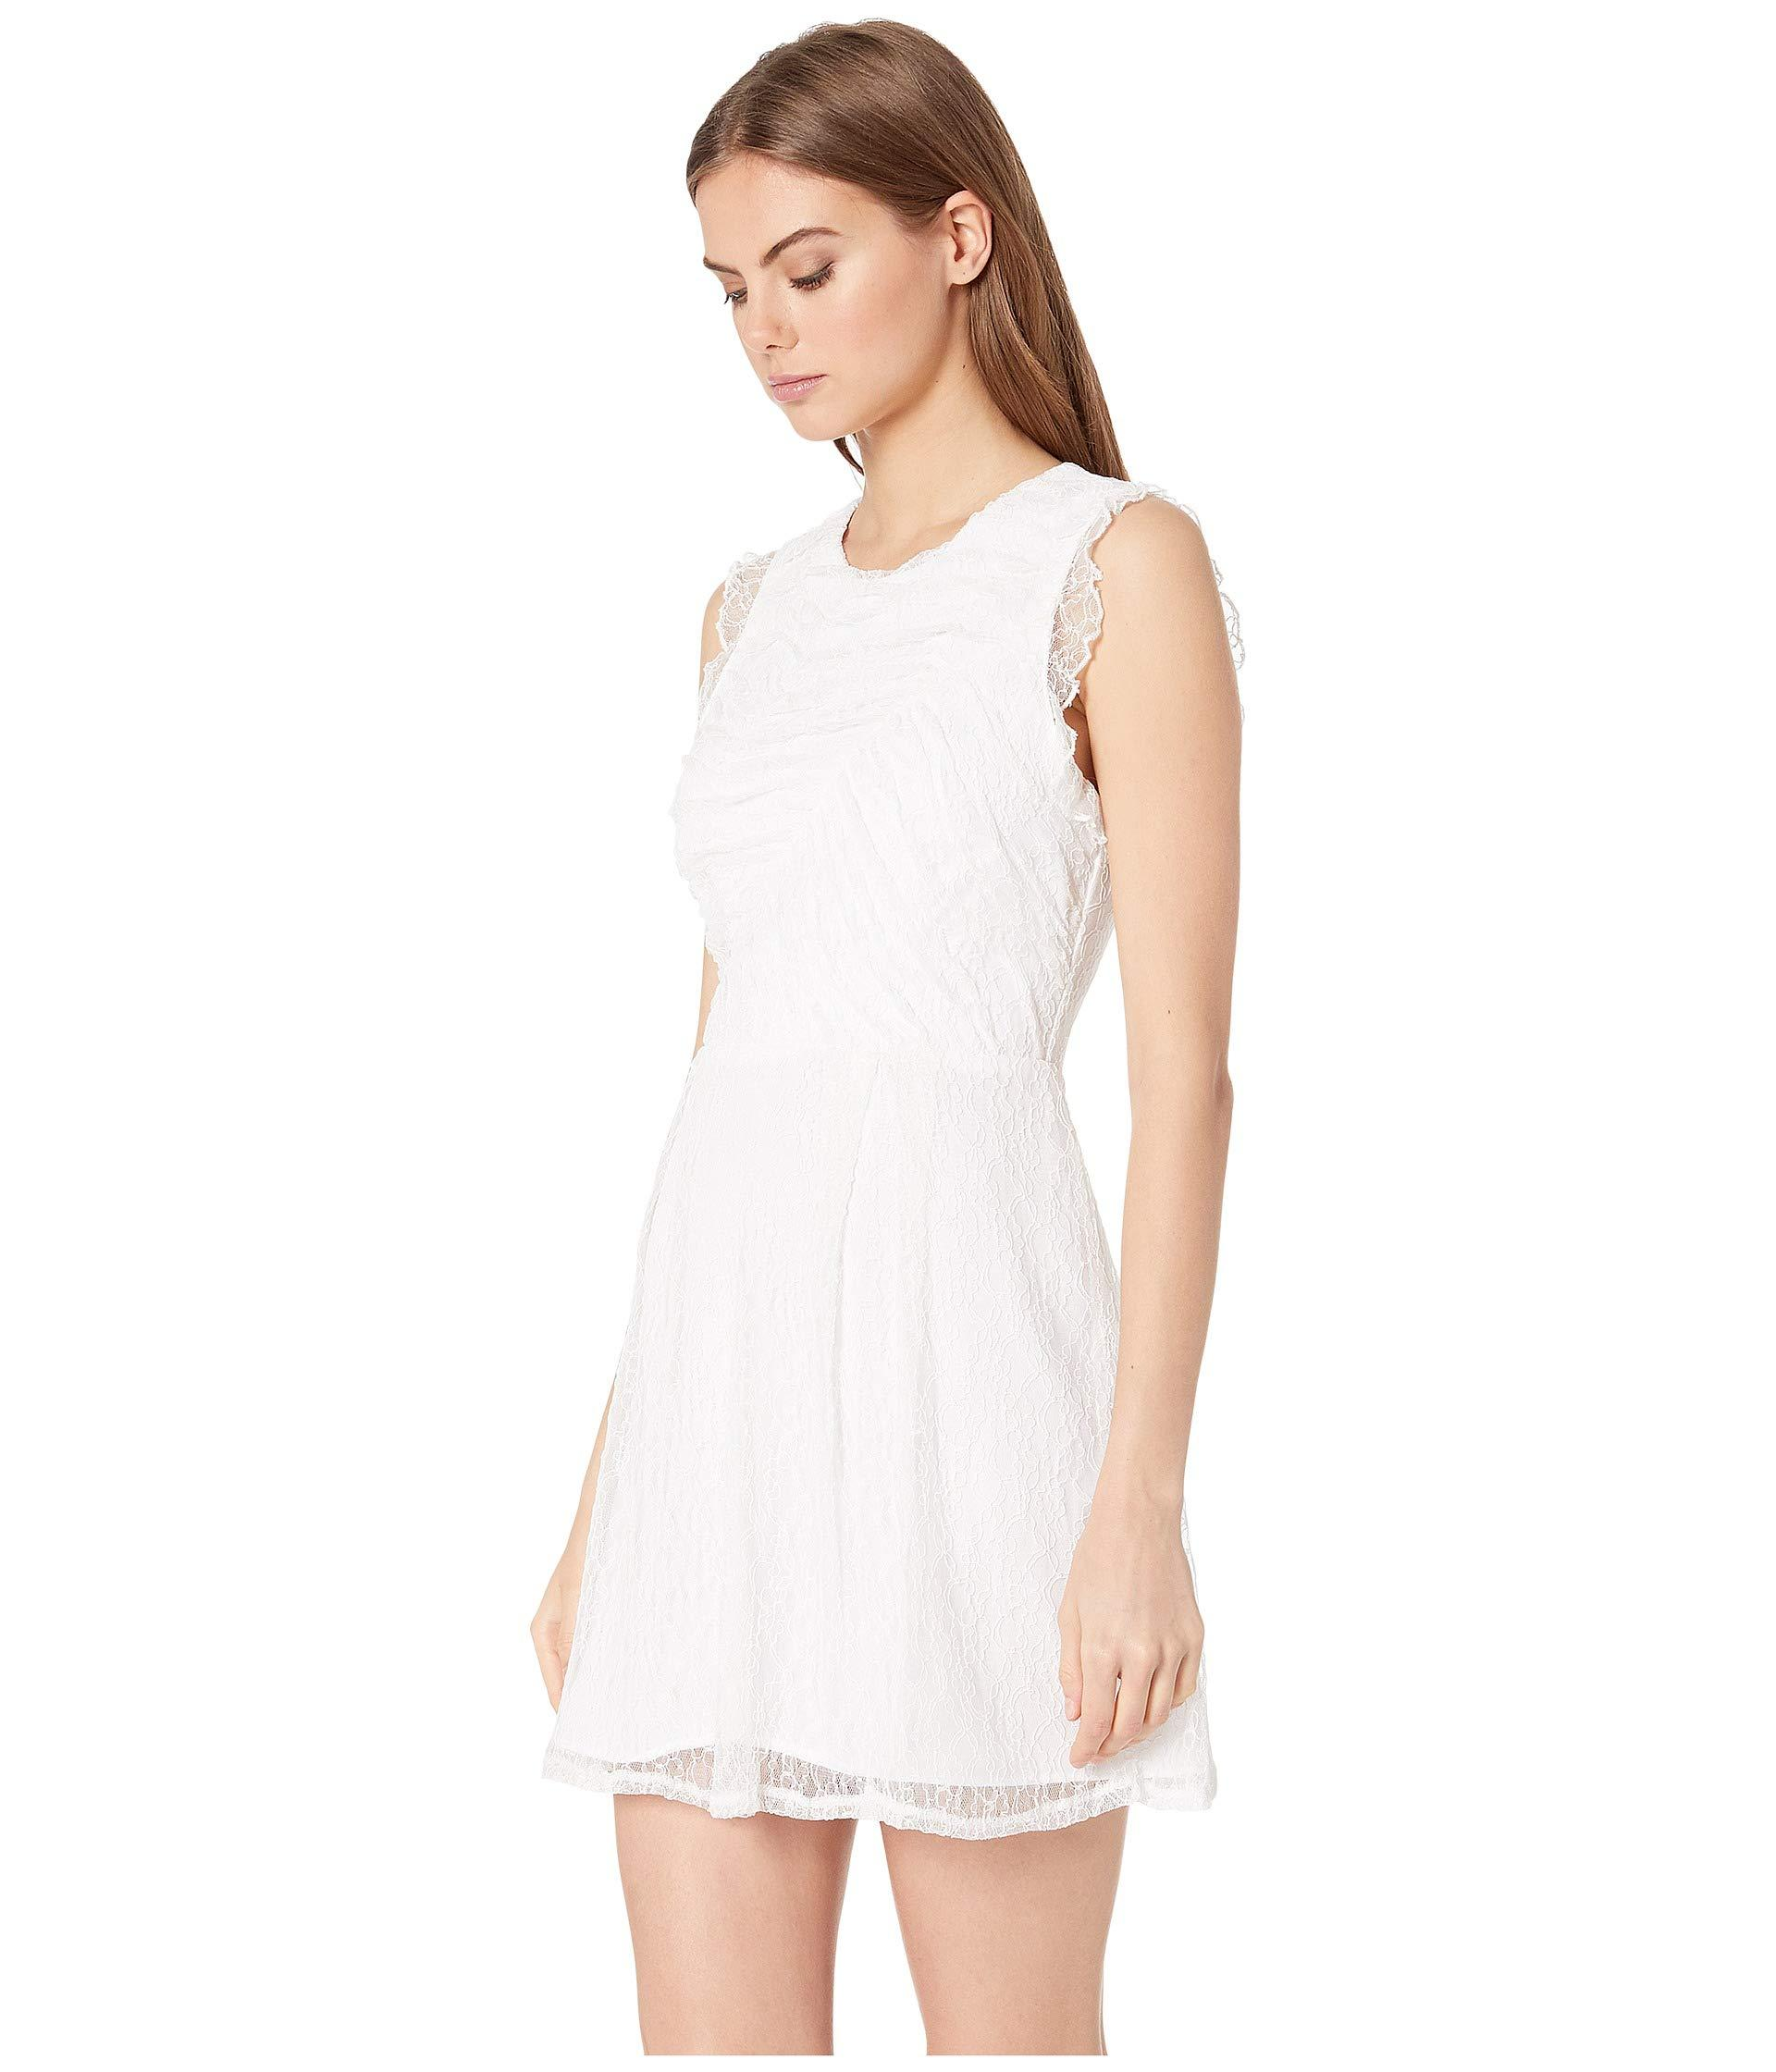 043fa825288a8 Lyst - BCBGeneration Shirred Lace Dress - Cxa6190029 (optic White) Women's  Dress in White